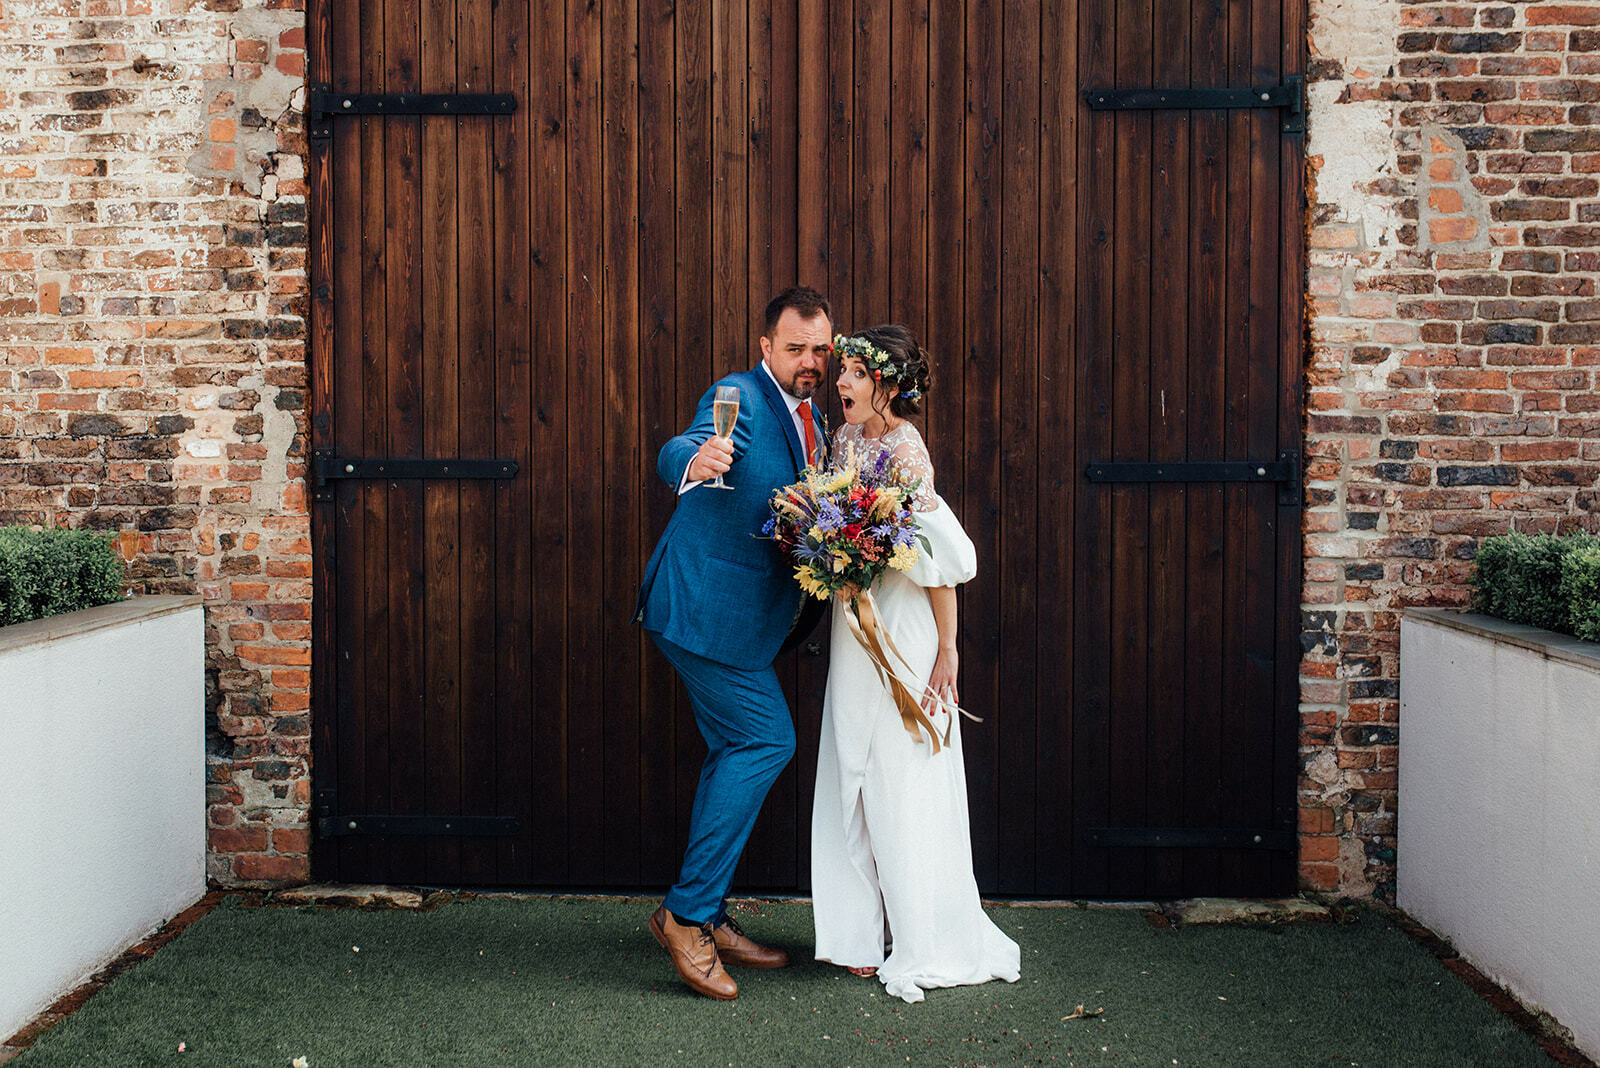 Bride and groom pose in front of the ban doors at The Normans